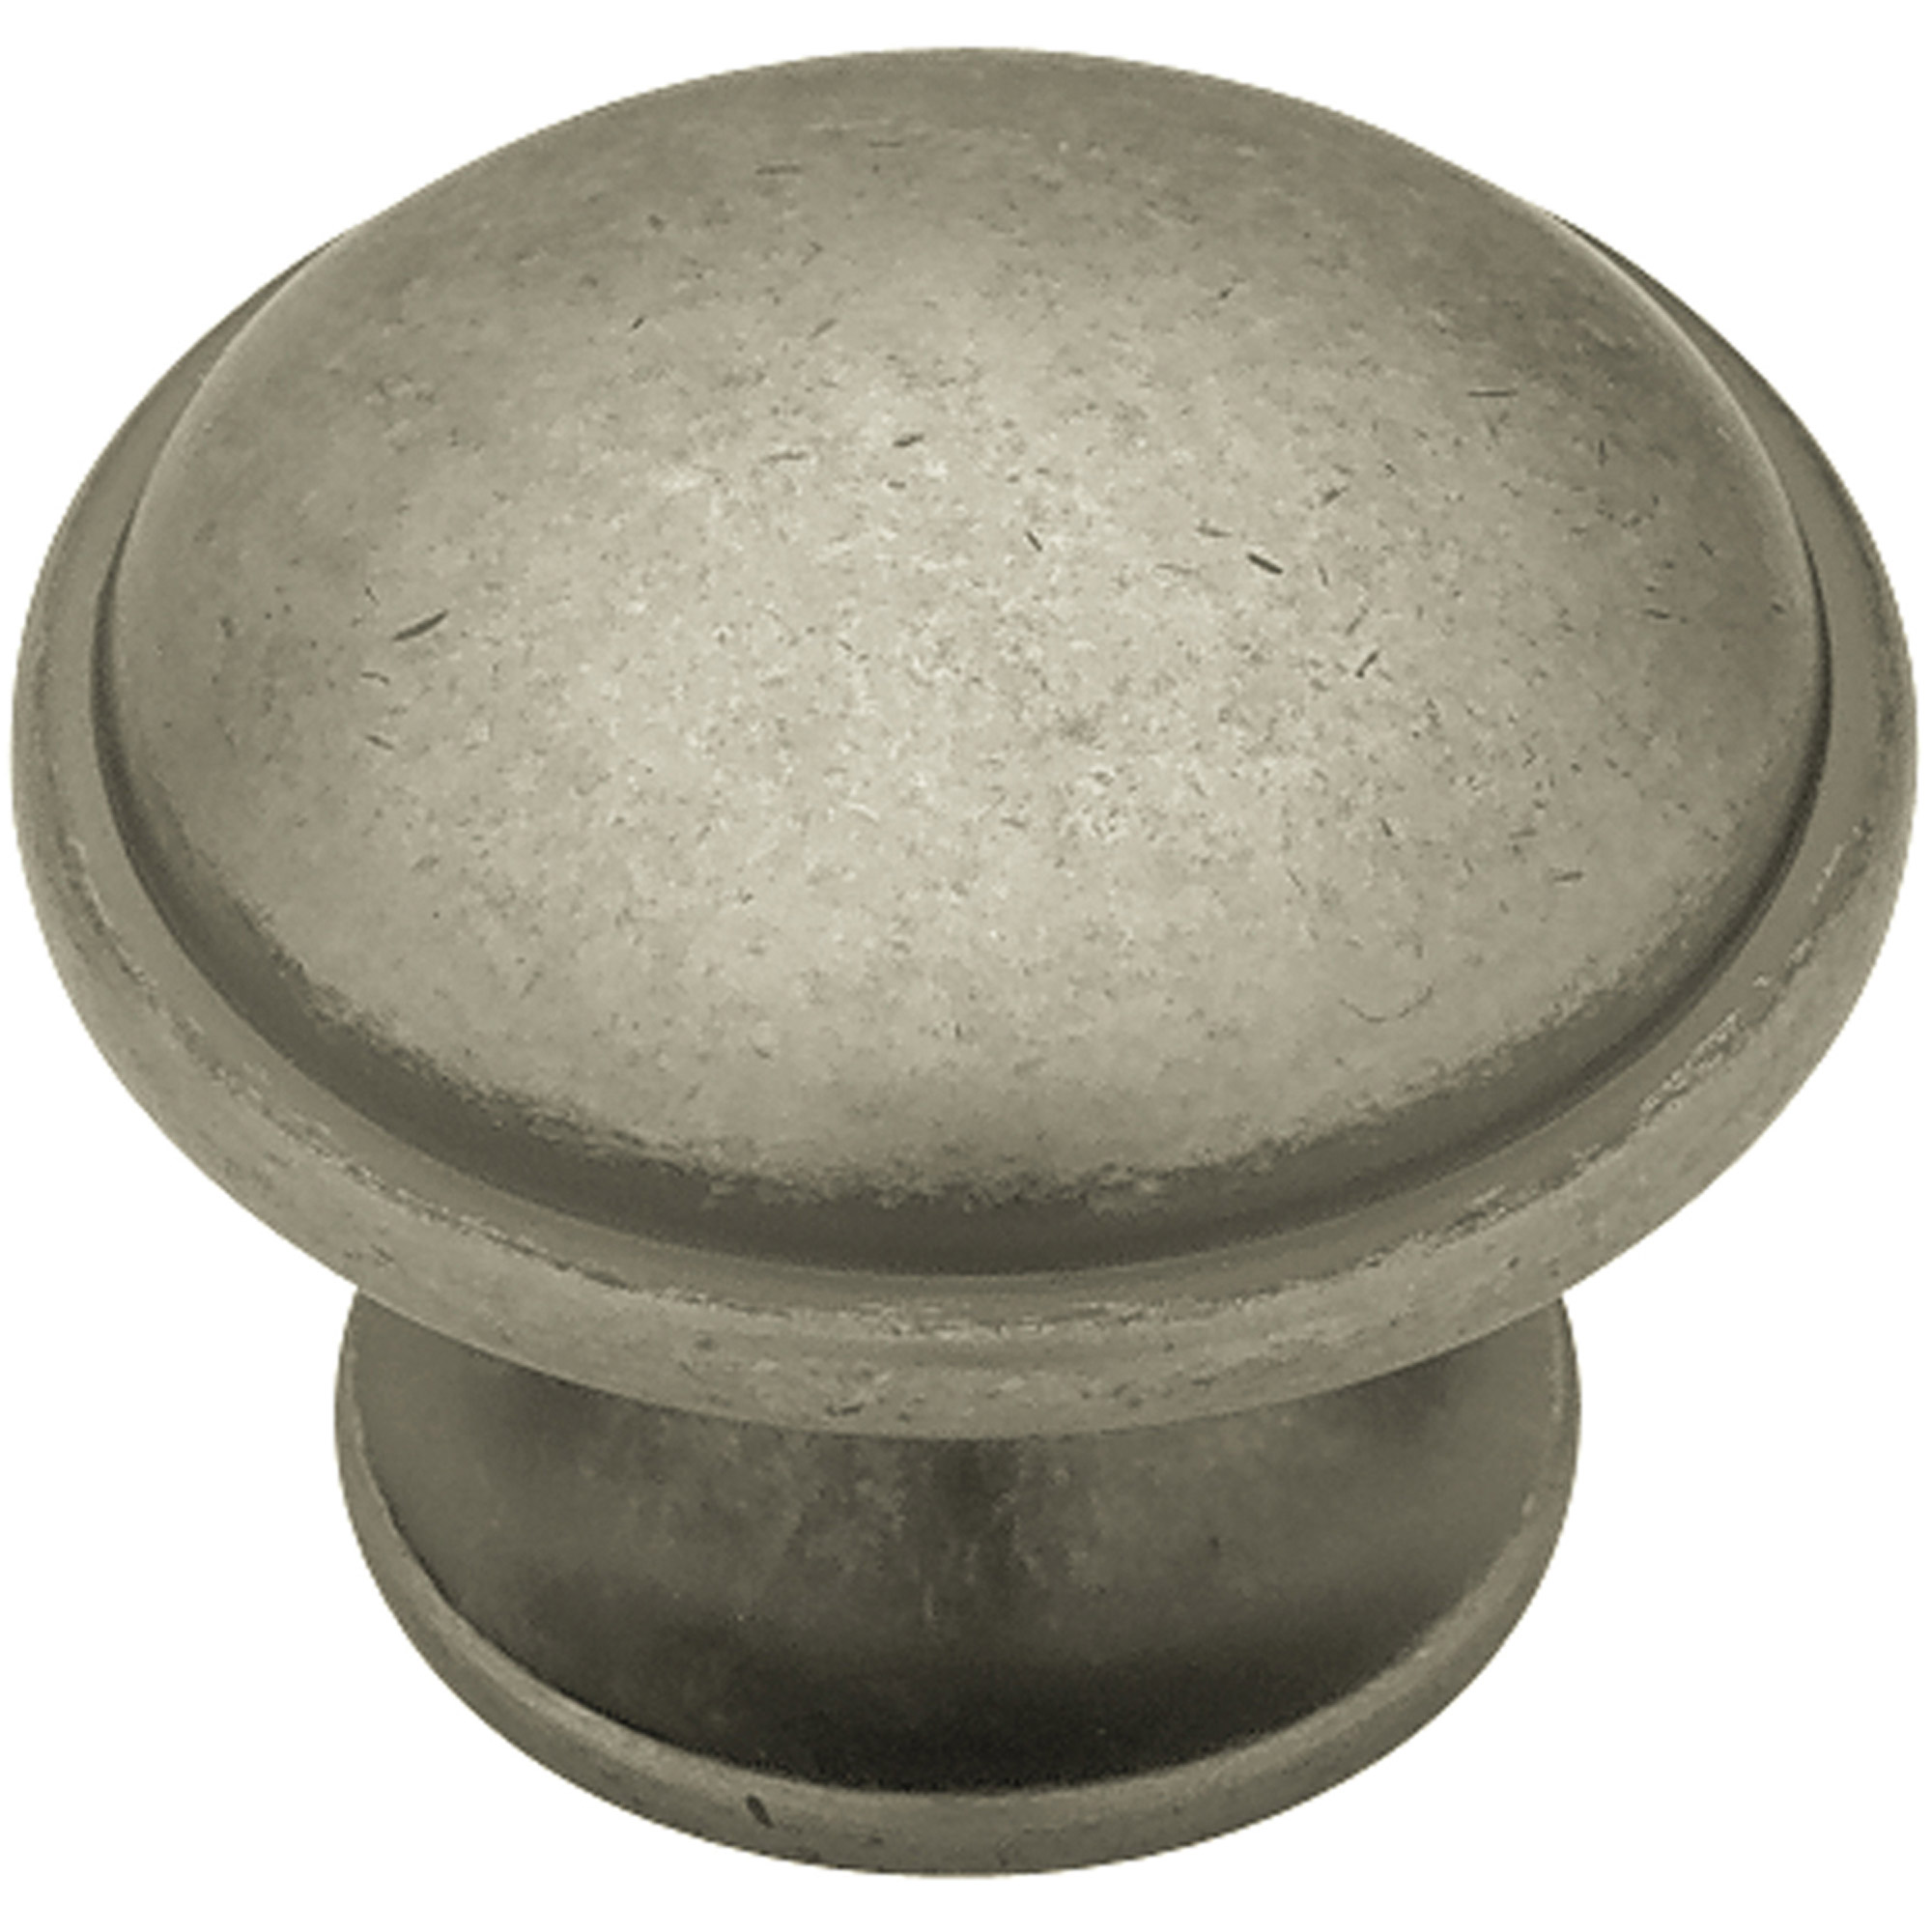 Liberty 36mm Wide Base Round Knob, Available in Multiple Colors